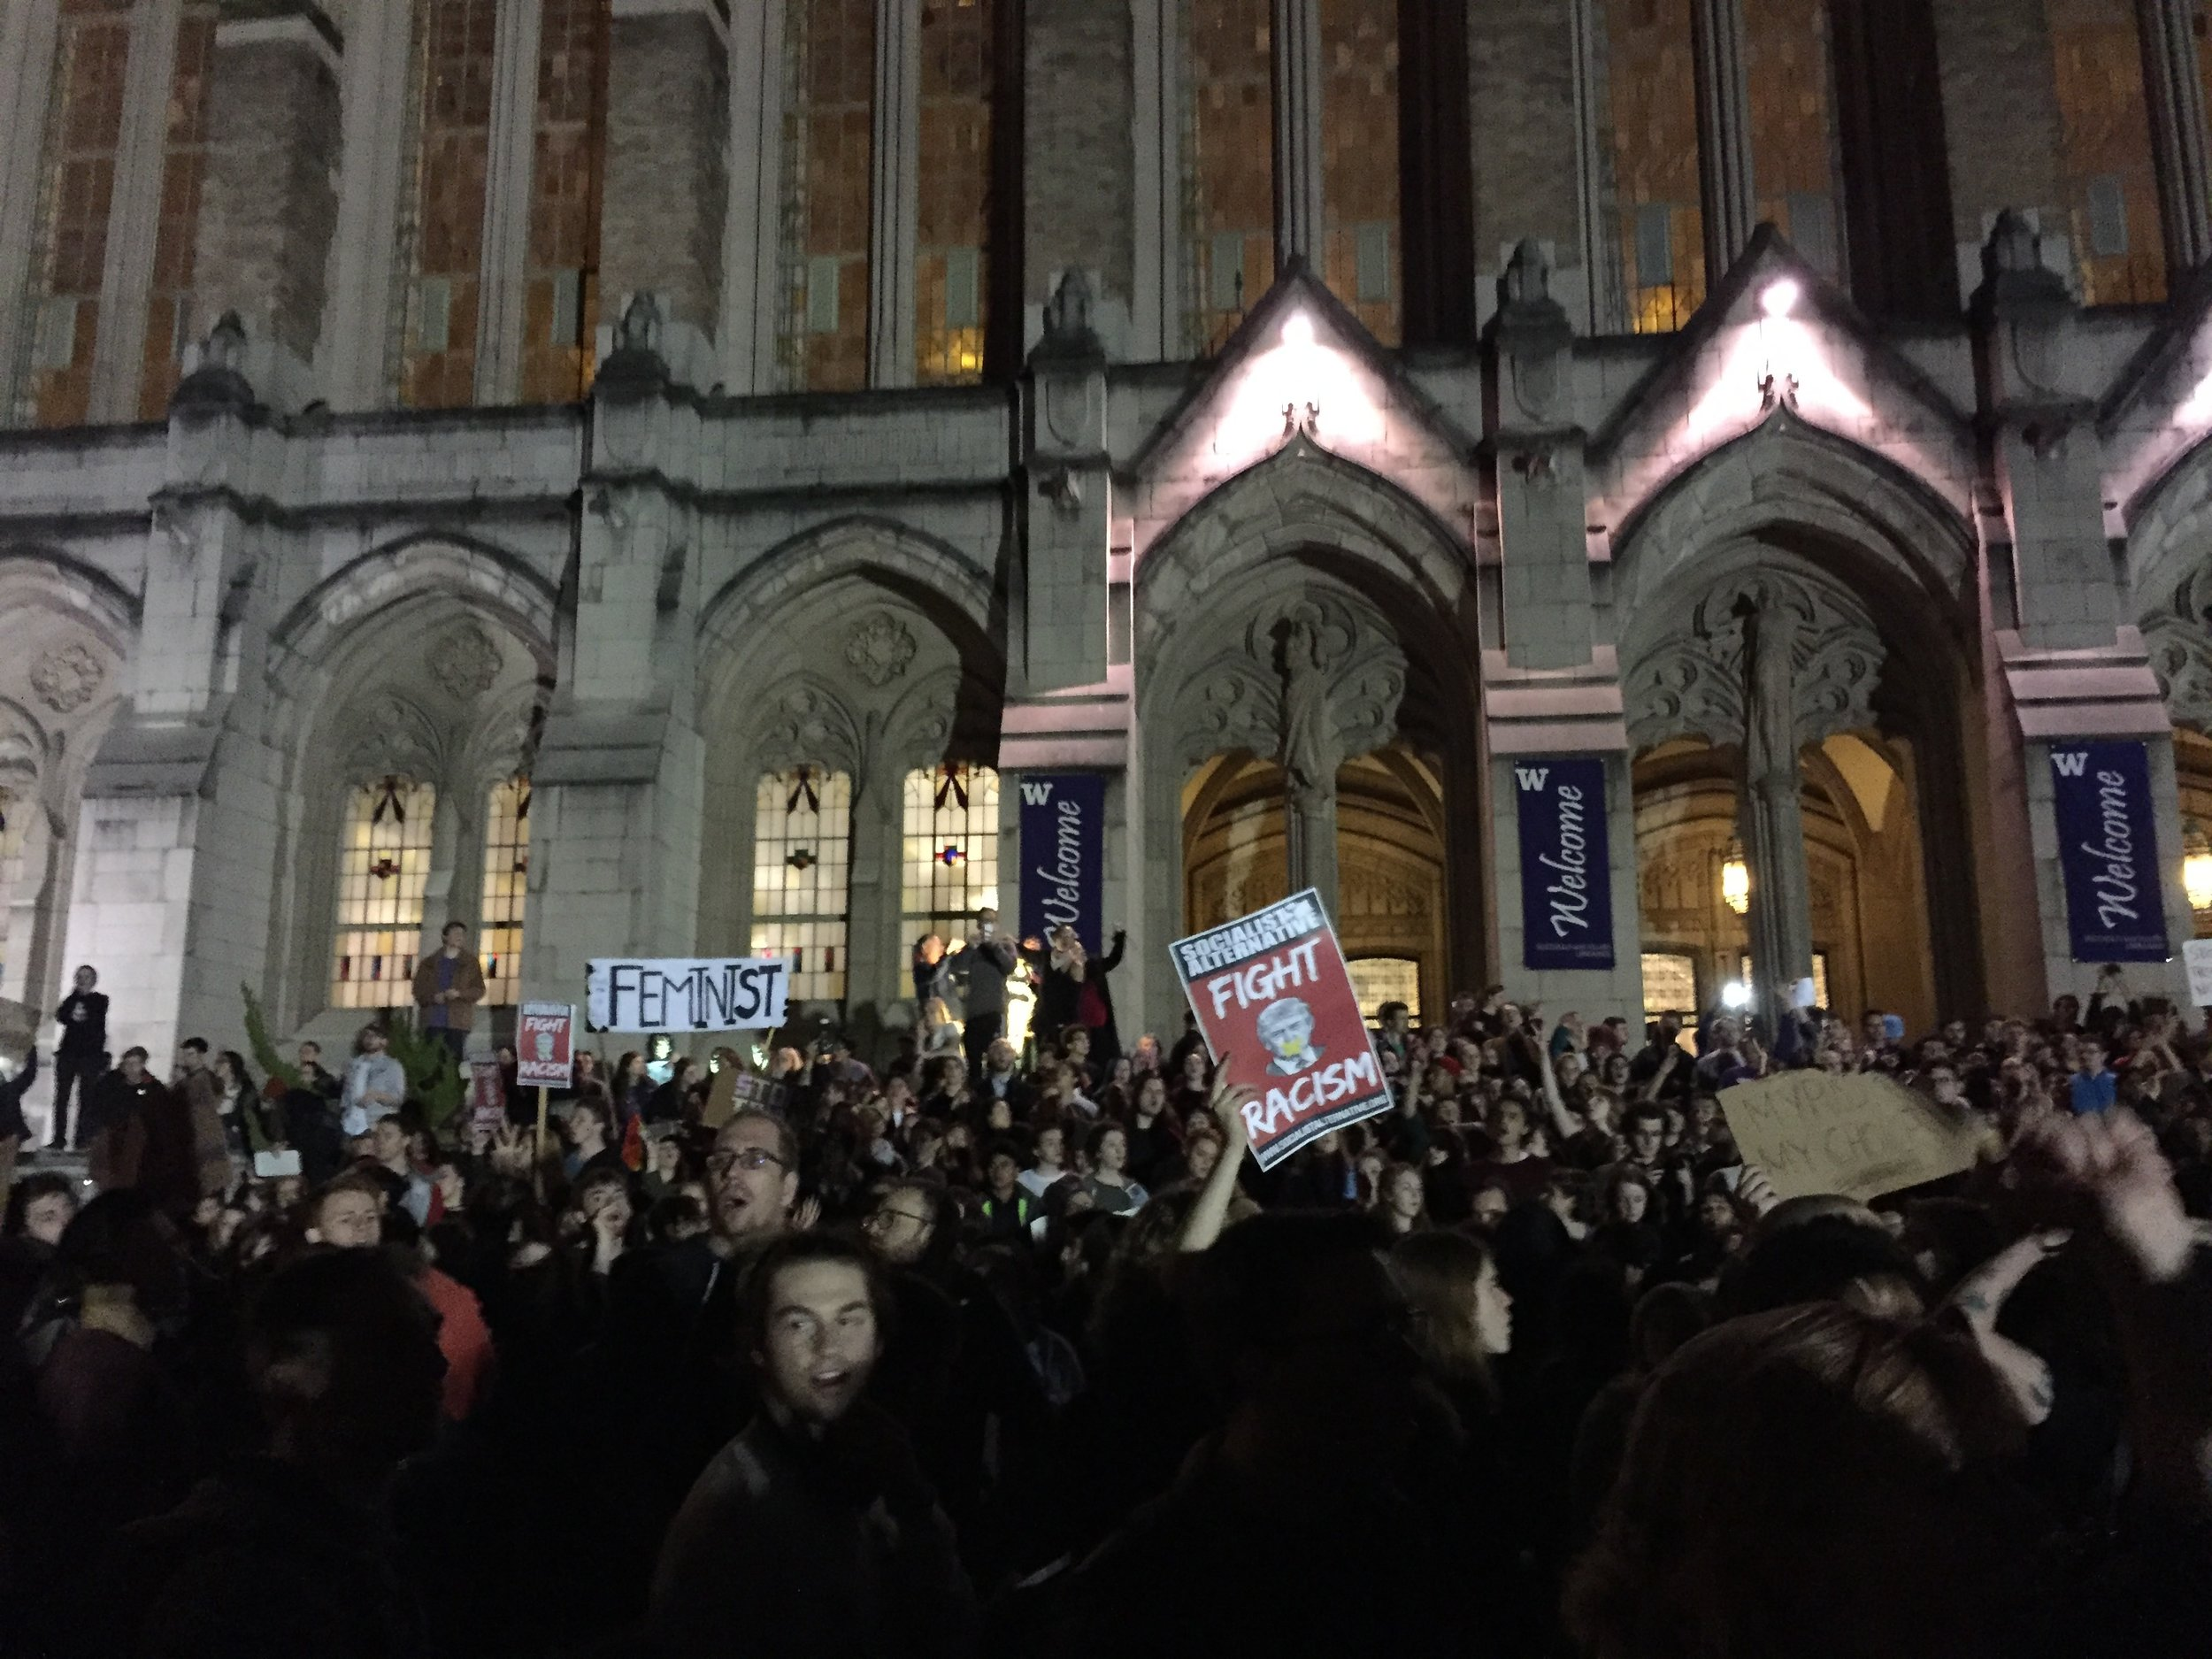 At the University of Washington, one stop on the Nov 9 march